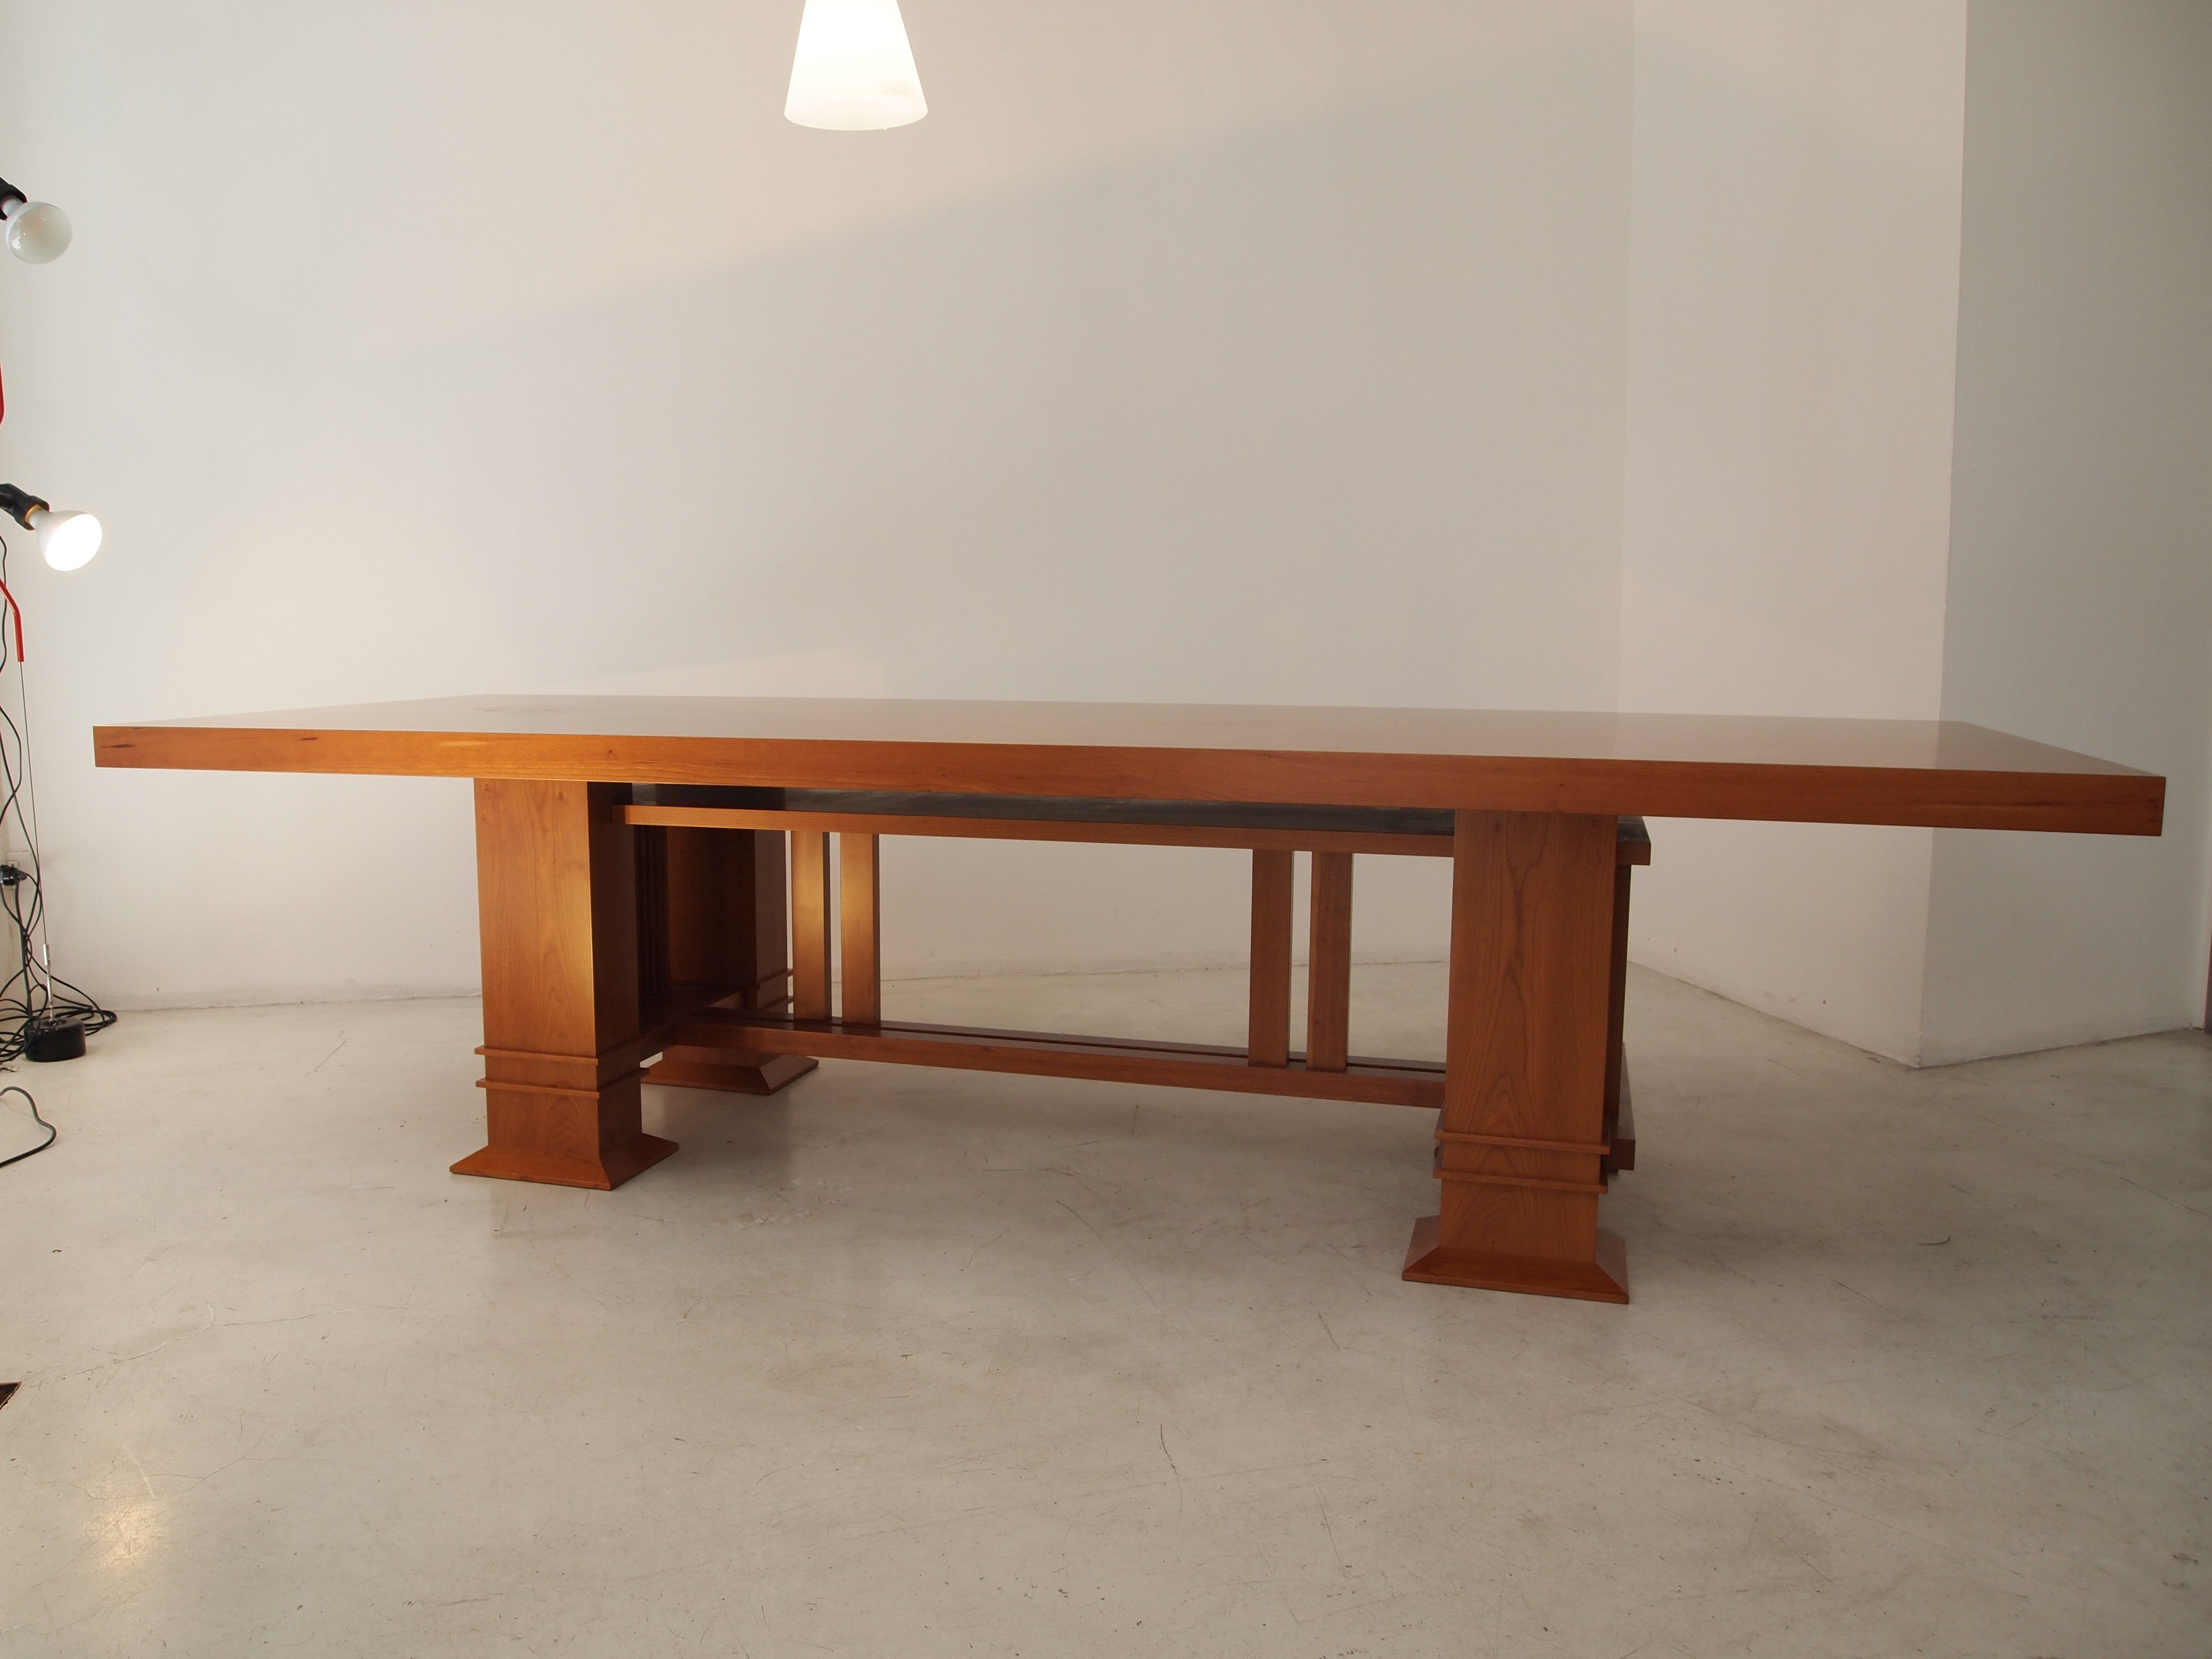 ALLEN table design Frank Lloyd Wright original Cassina made in Italy